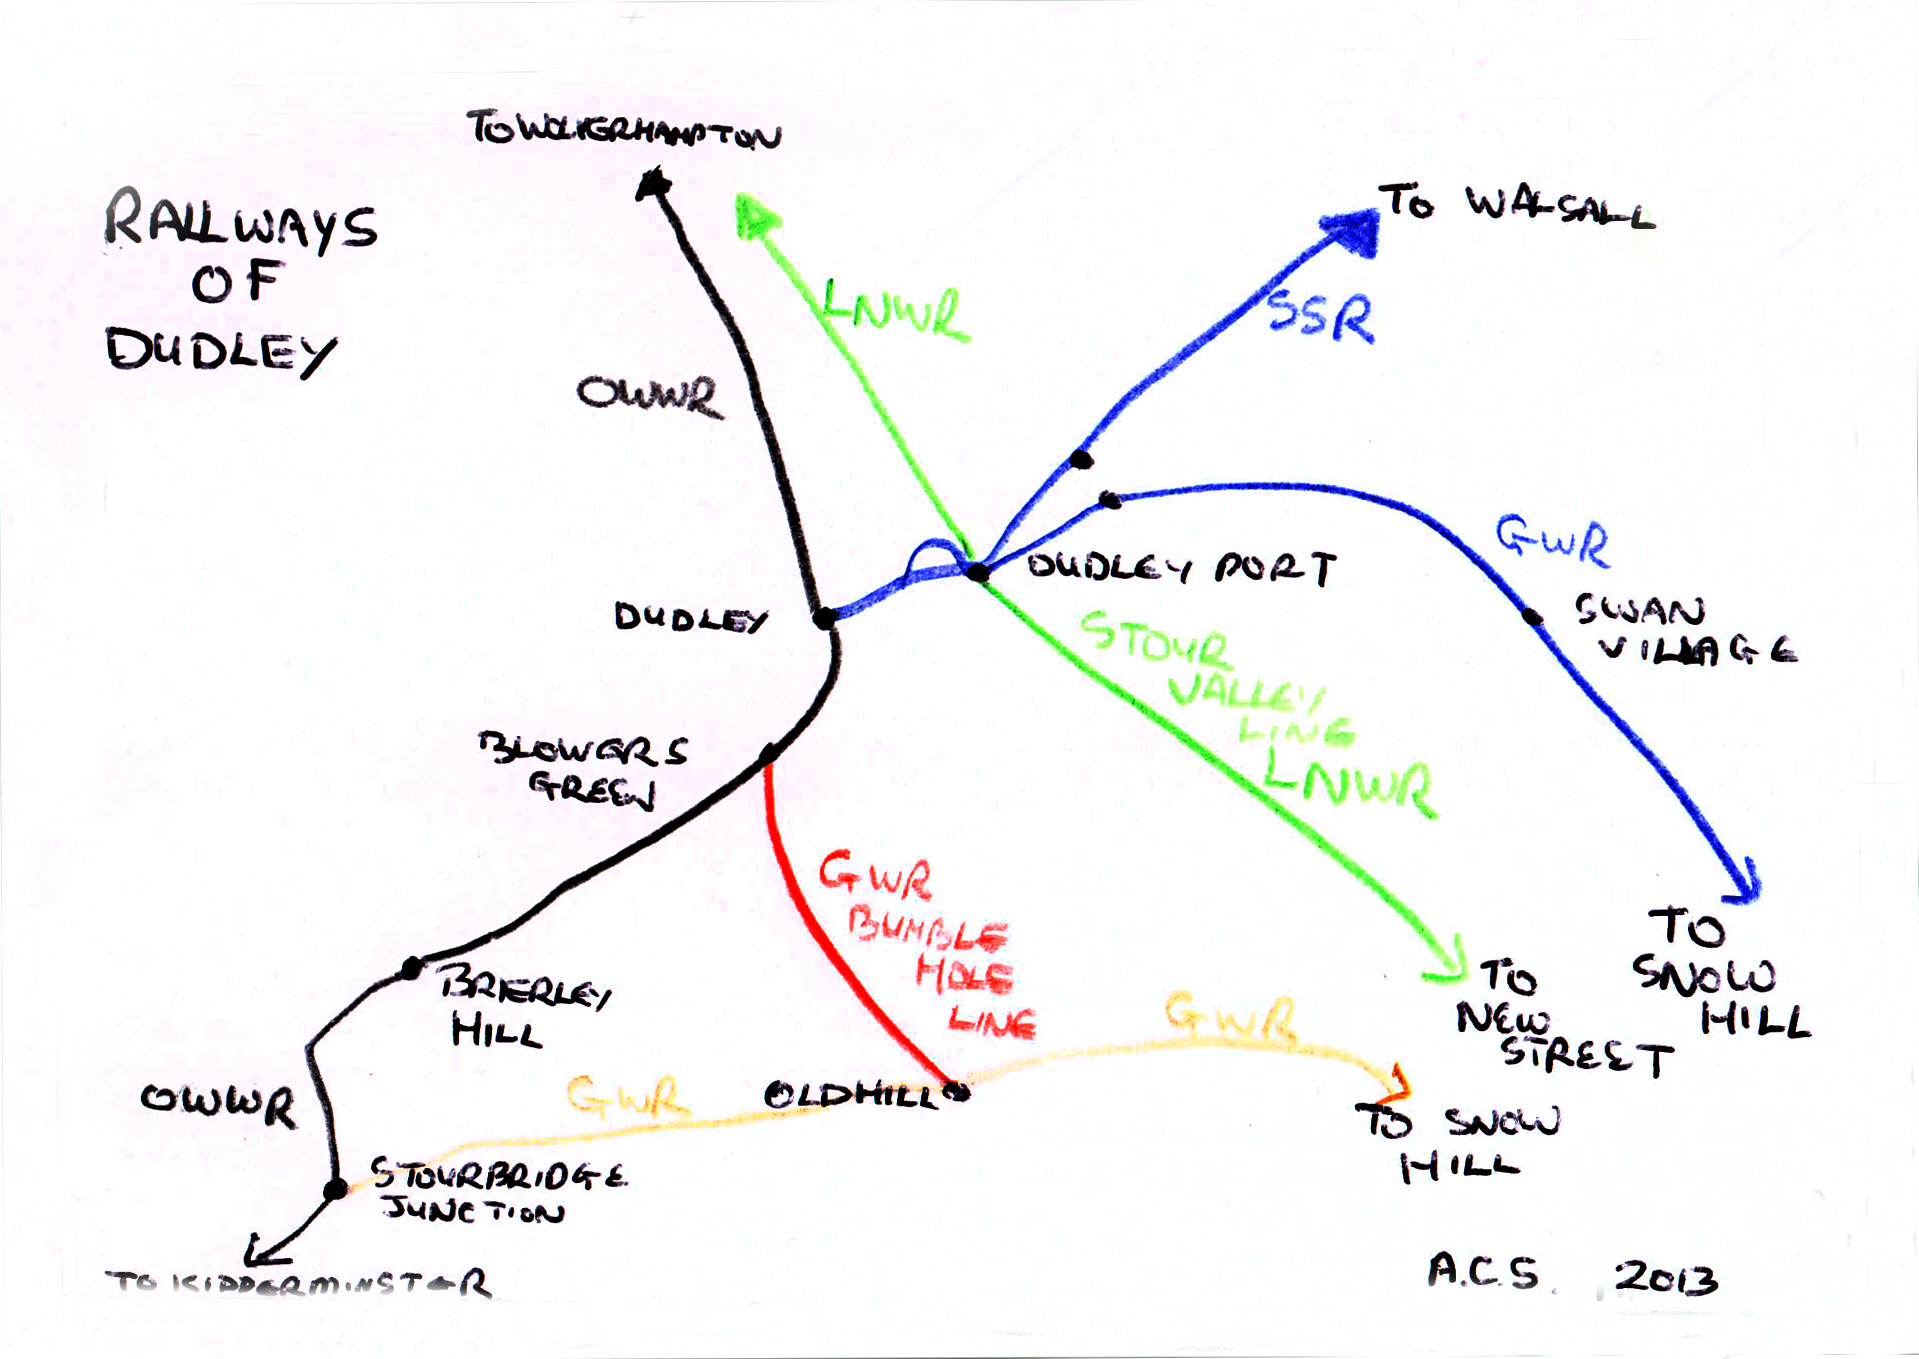 Railways of Dudley Sketch Map